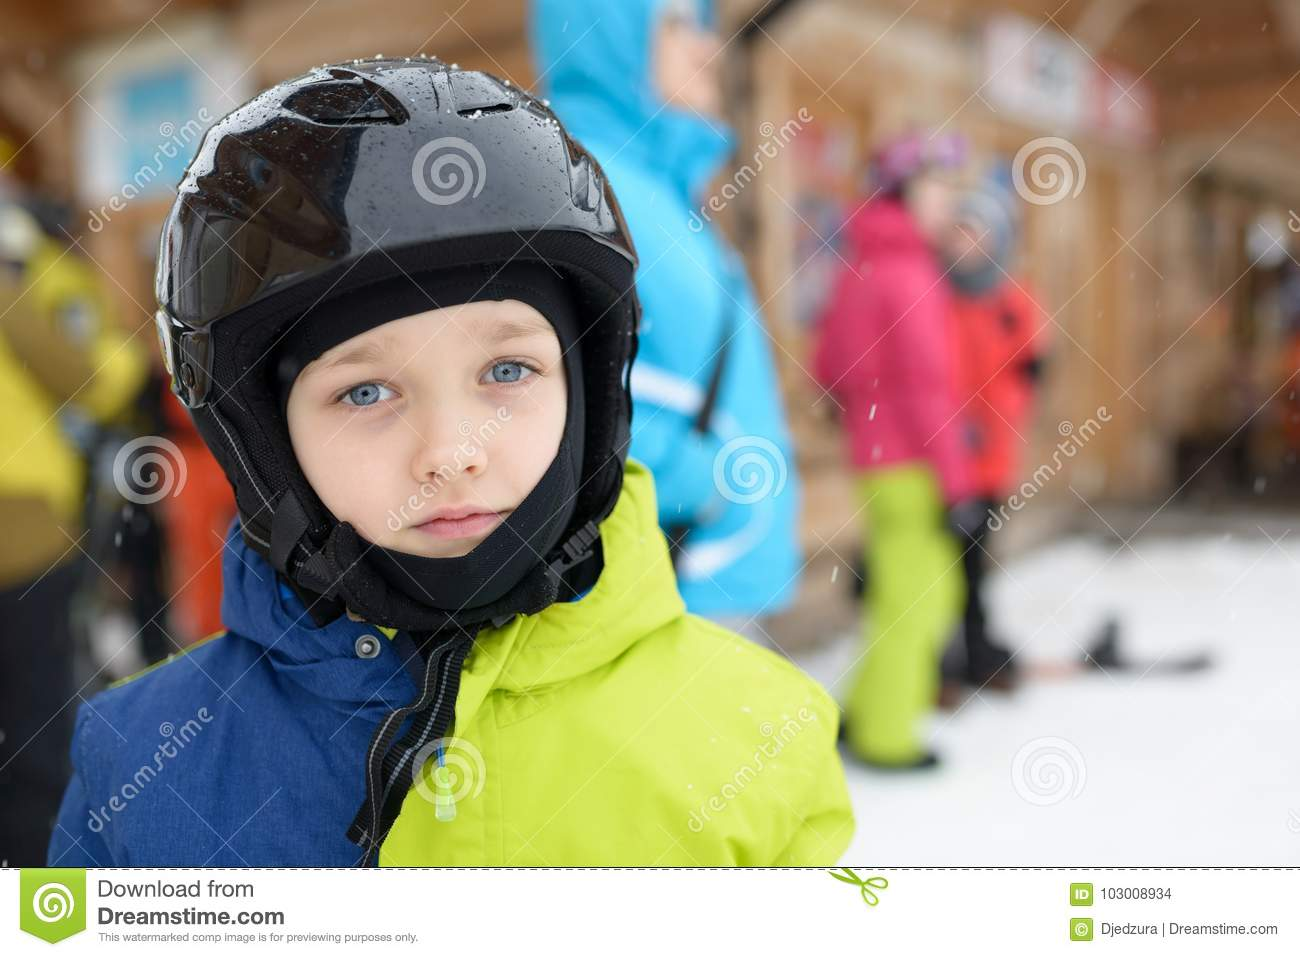 d5be621584c Little boy in ski helmet stock photo. Image of snowboard - 103008934